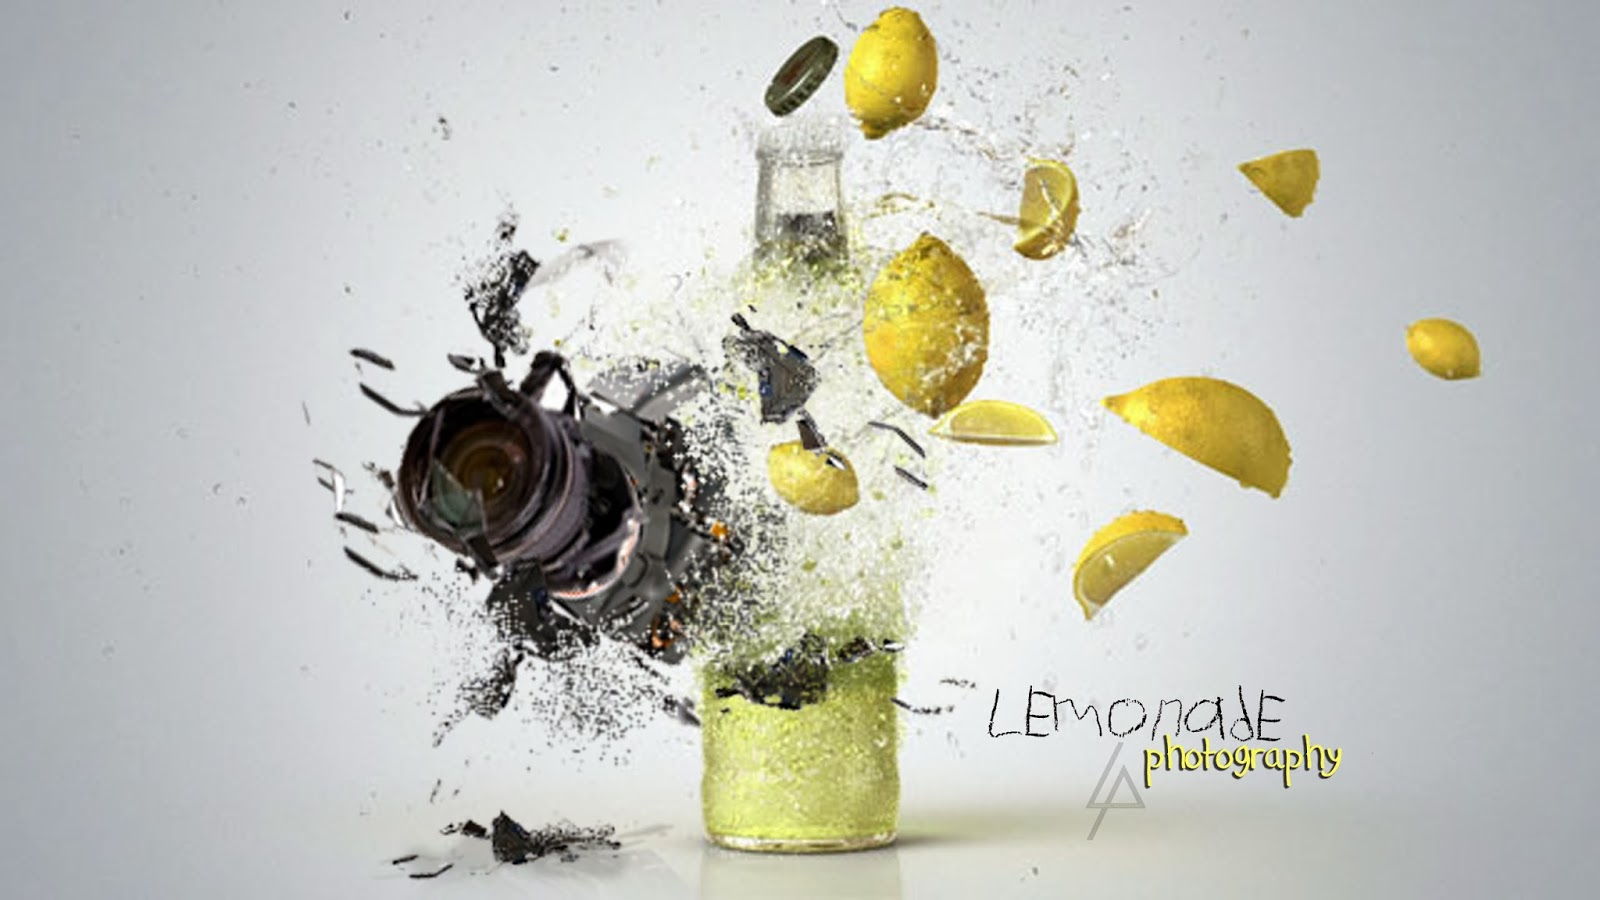 http://lemonade-photography.blogspot.com